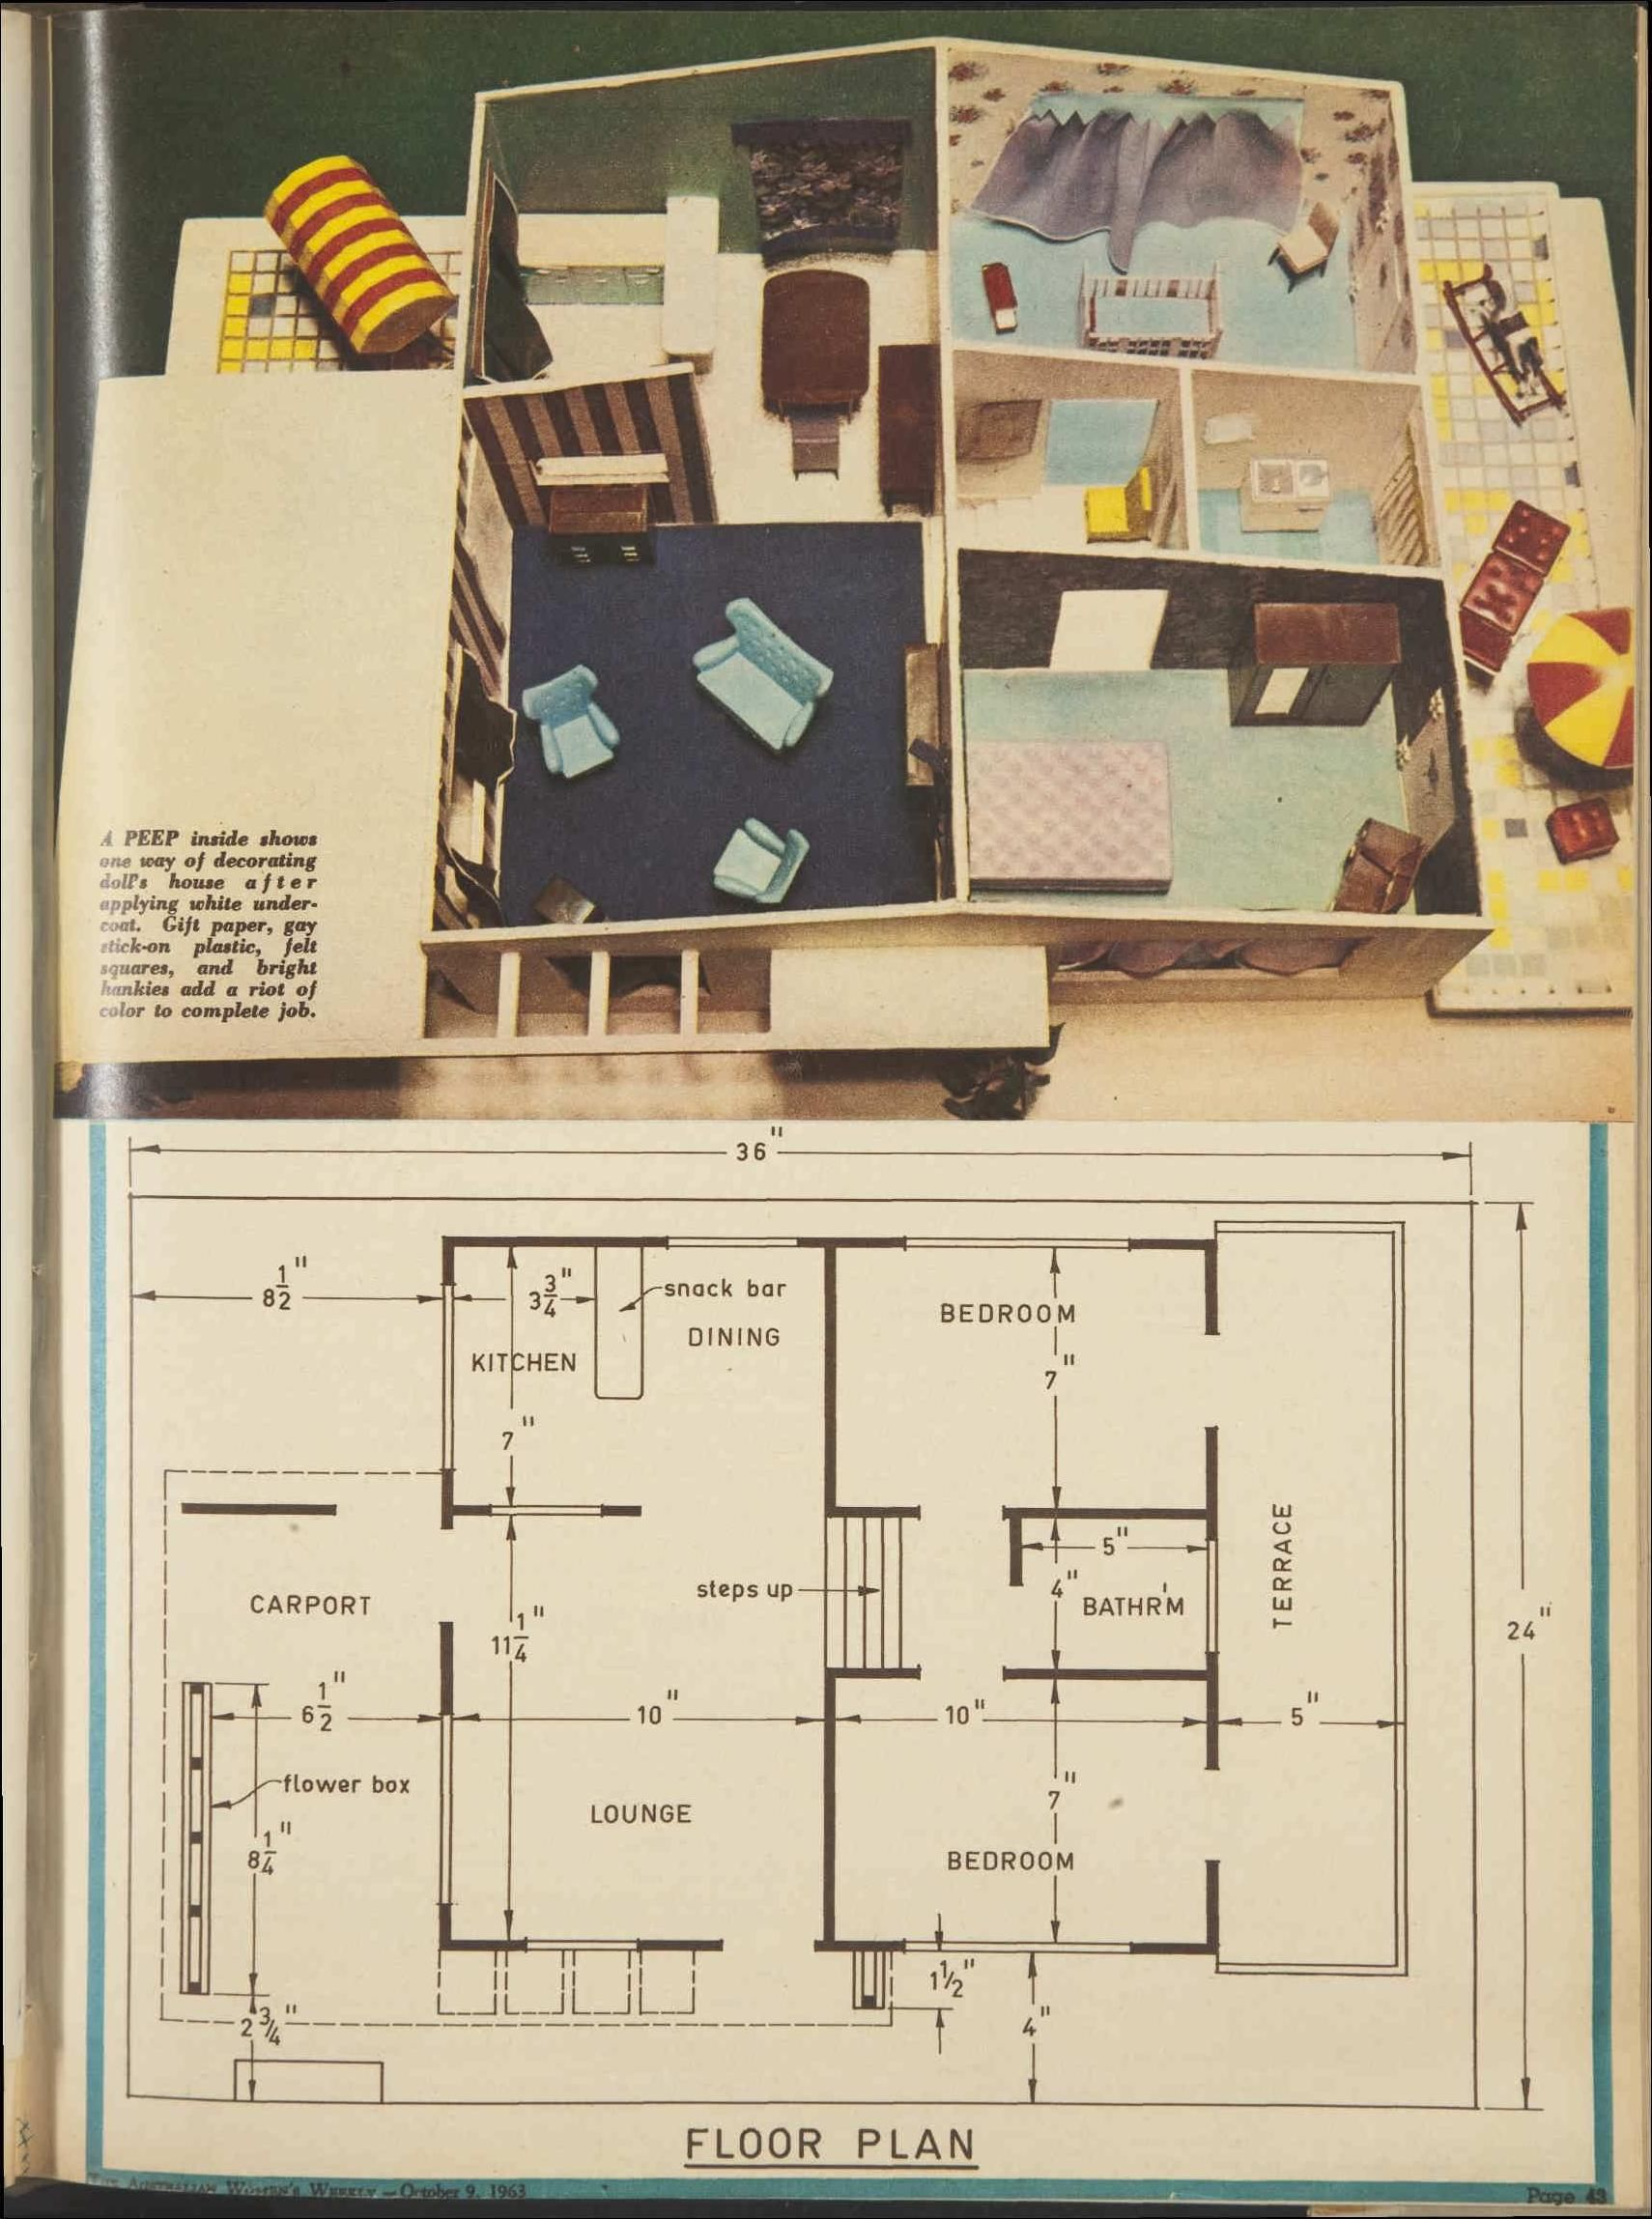 House Plan Plans For A Split Level 1960s Doll S House 9 Oct 1963 The Dollhouse Furniture Plans Doll House Plans Doll House